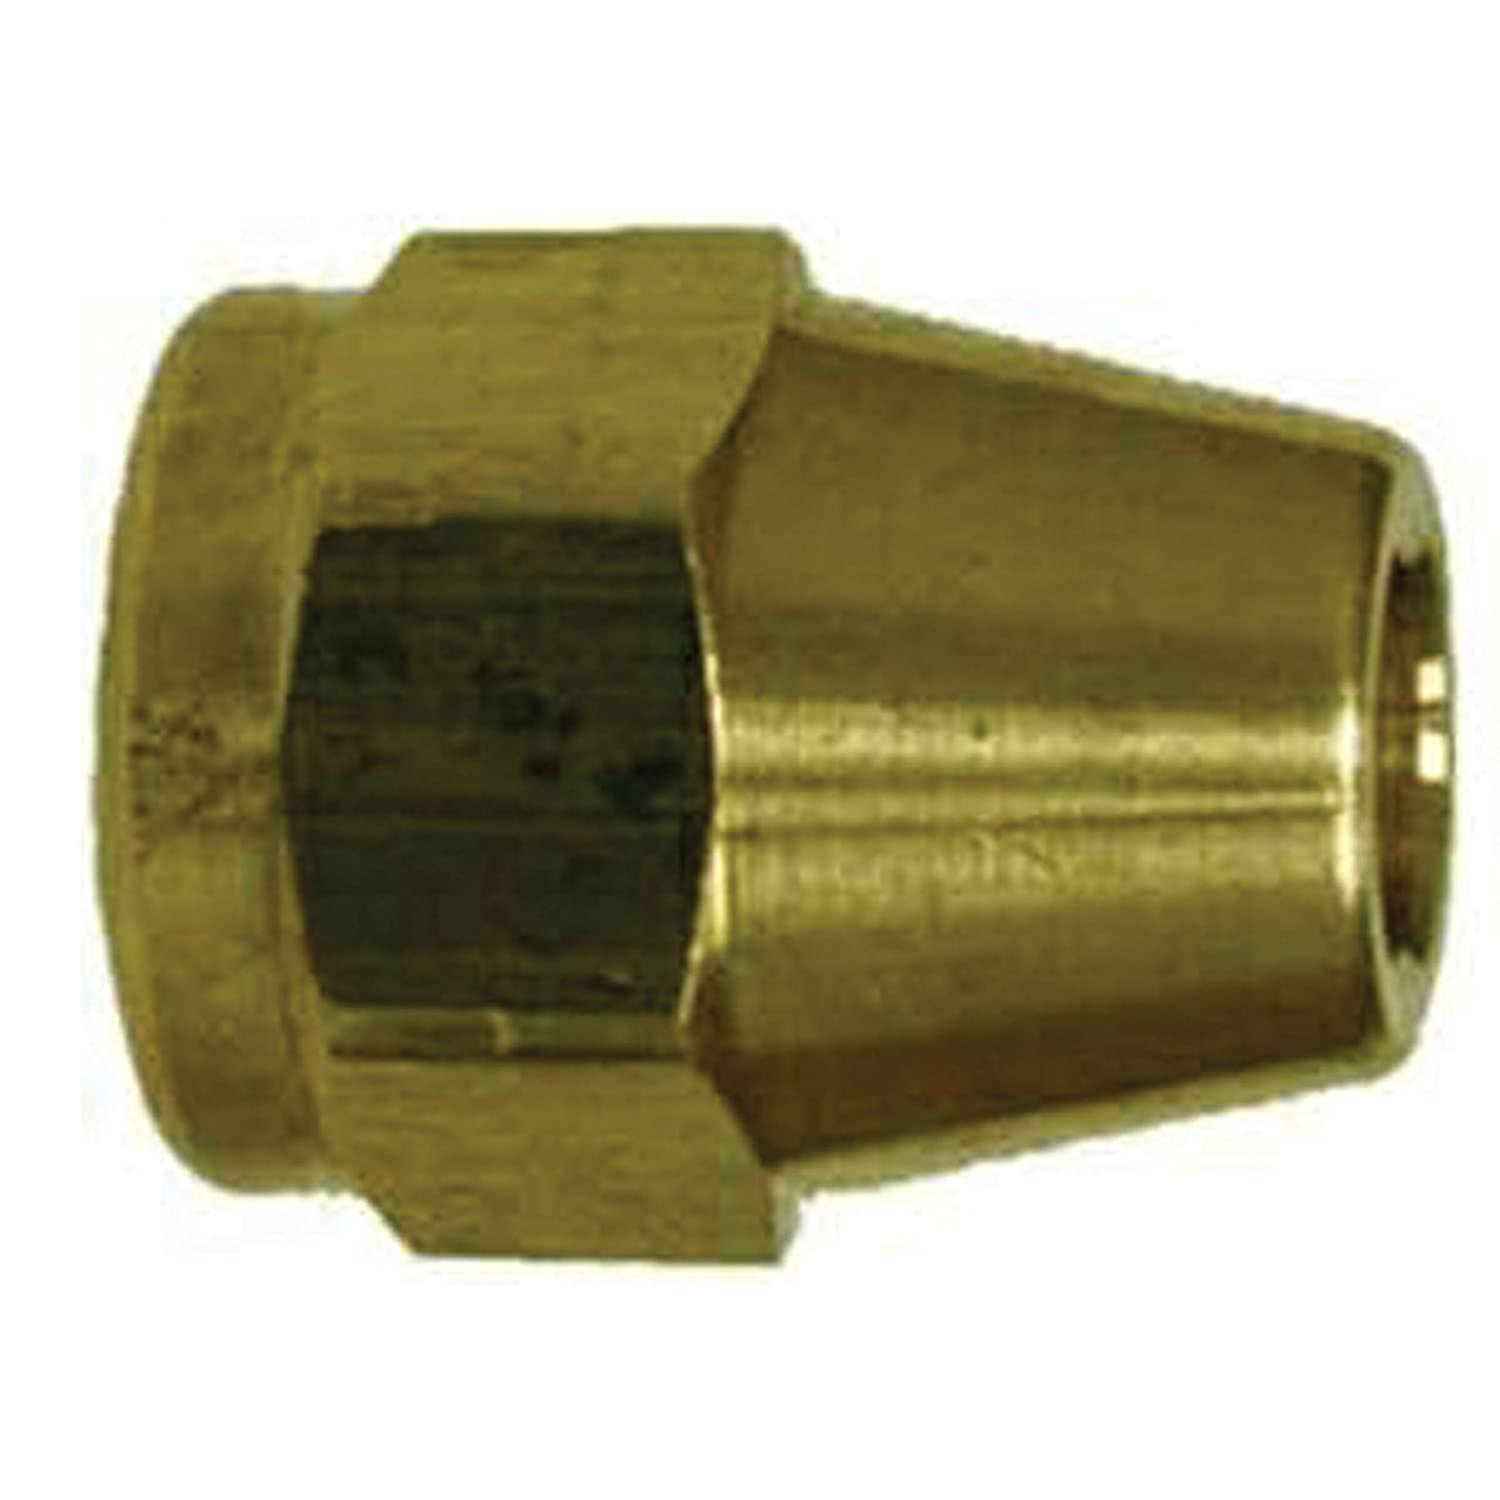 Midland 10-017 Brass SAE 45 Degree Flare 3 Rod Limited price New popularity 8